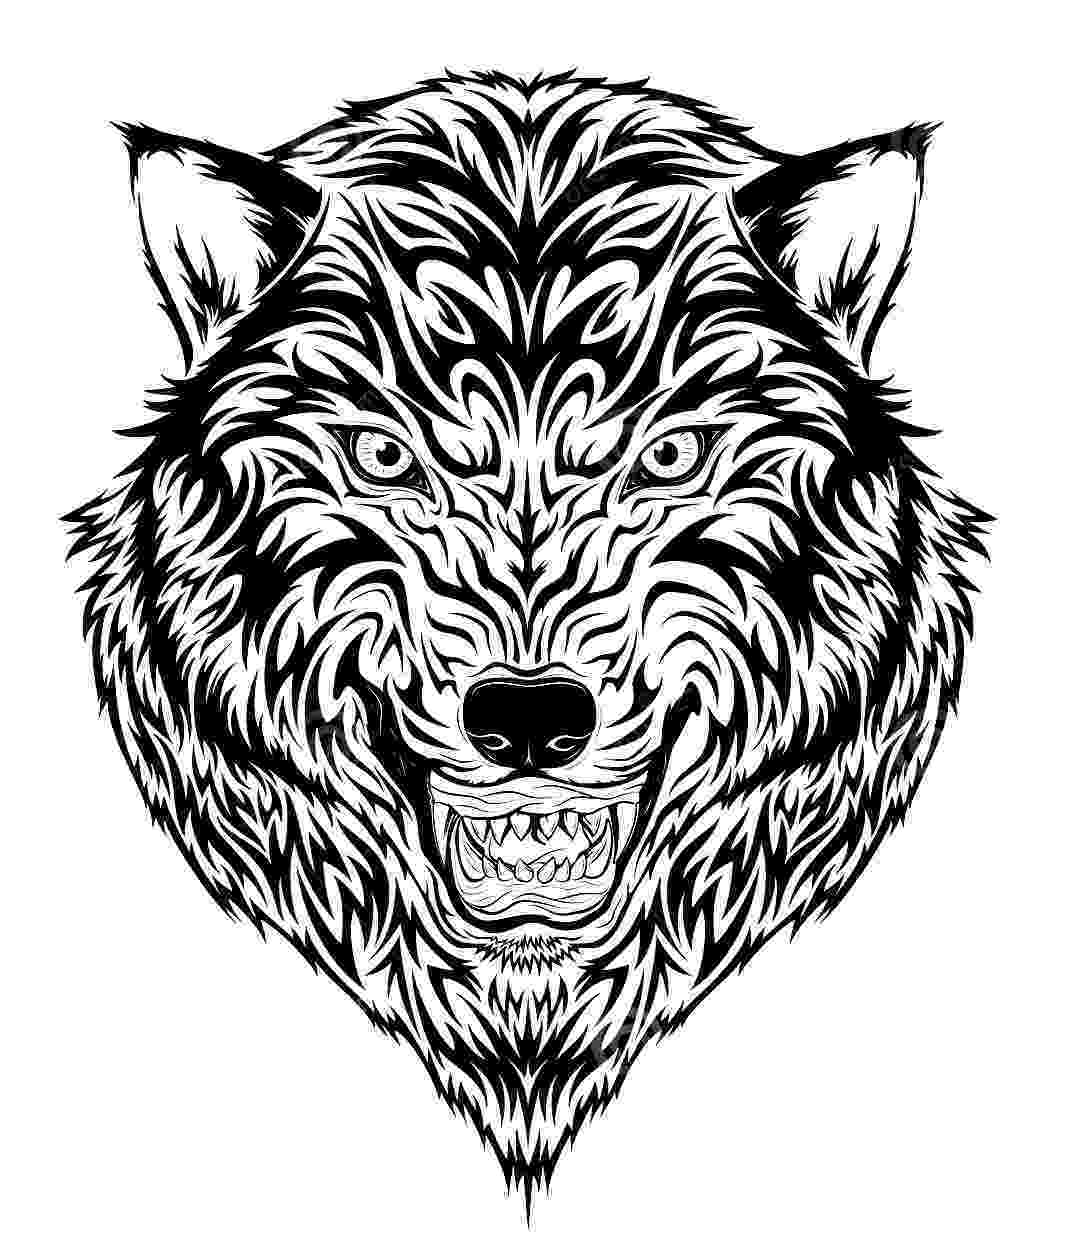 coloring pages for tattoos rick genest face and chest tattoos adult coloring pages pages coloring for tattoos